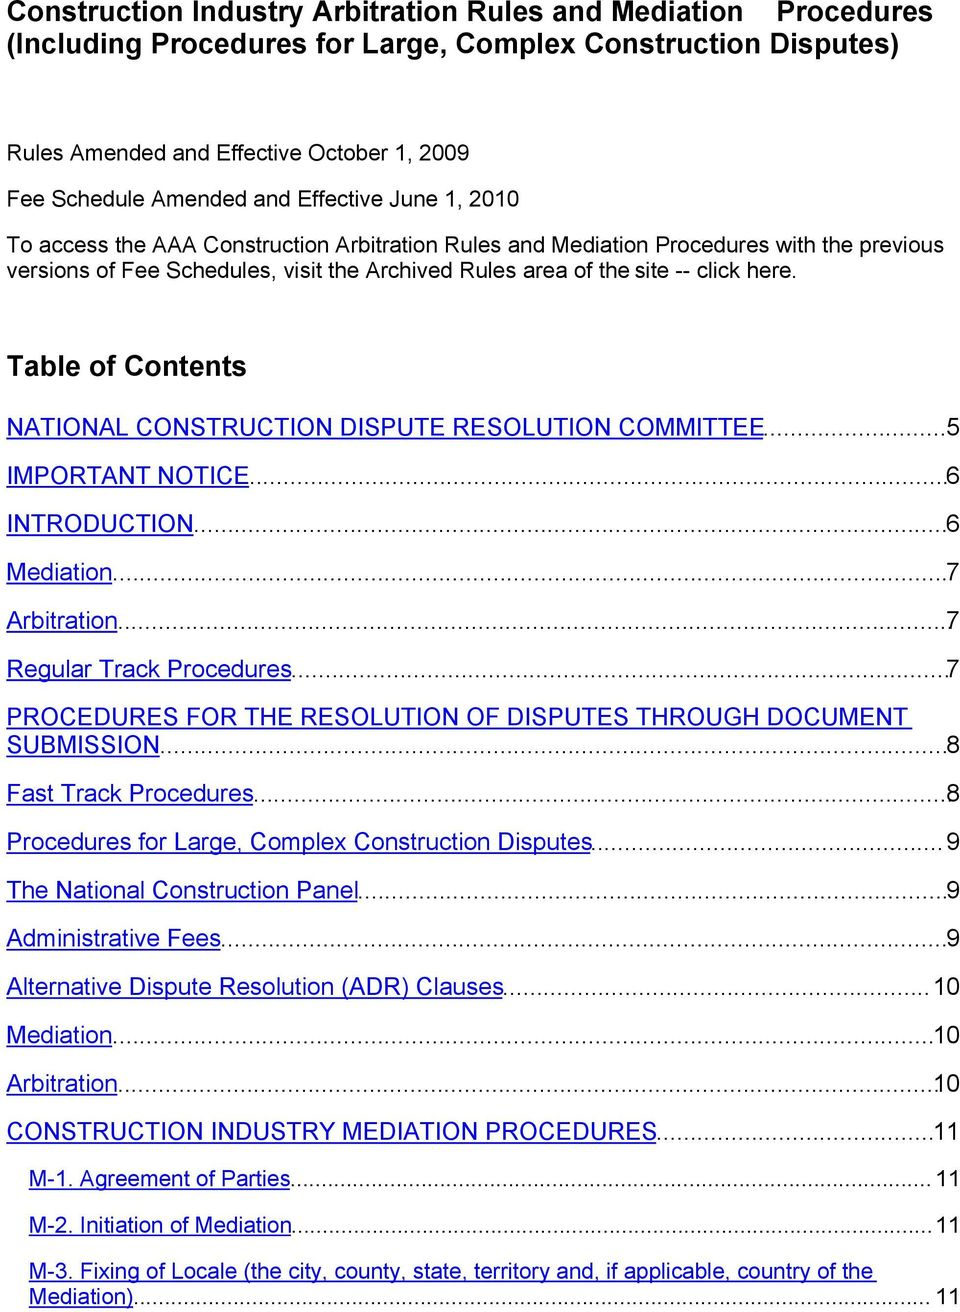 Table of Contents NATIONAL CONSTRUCTION DISPUTE RESOLUTION COMMITTEE...5 IMPORTANT NOTICE...6 INTRODUCTION...6 Mediation...7 Arbitration...7 Regular Track Procedures.